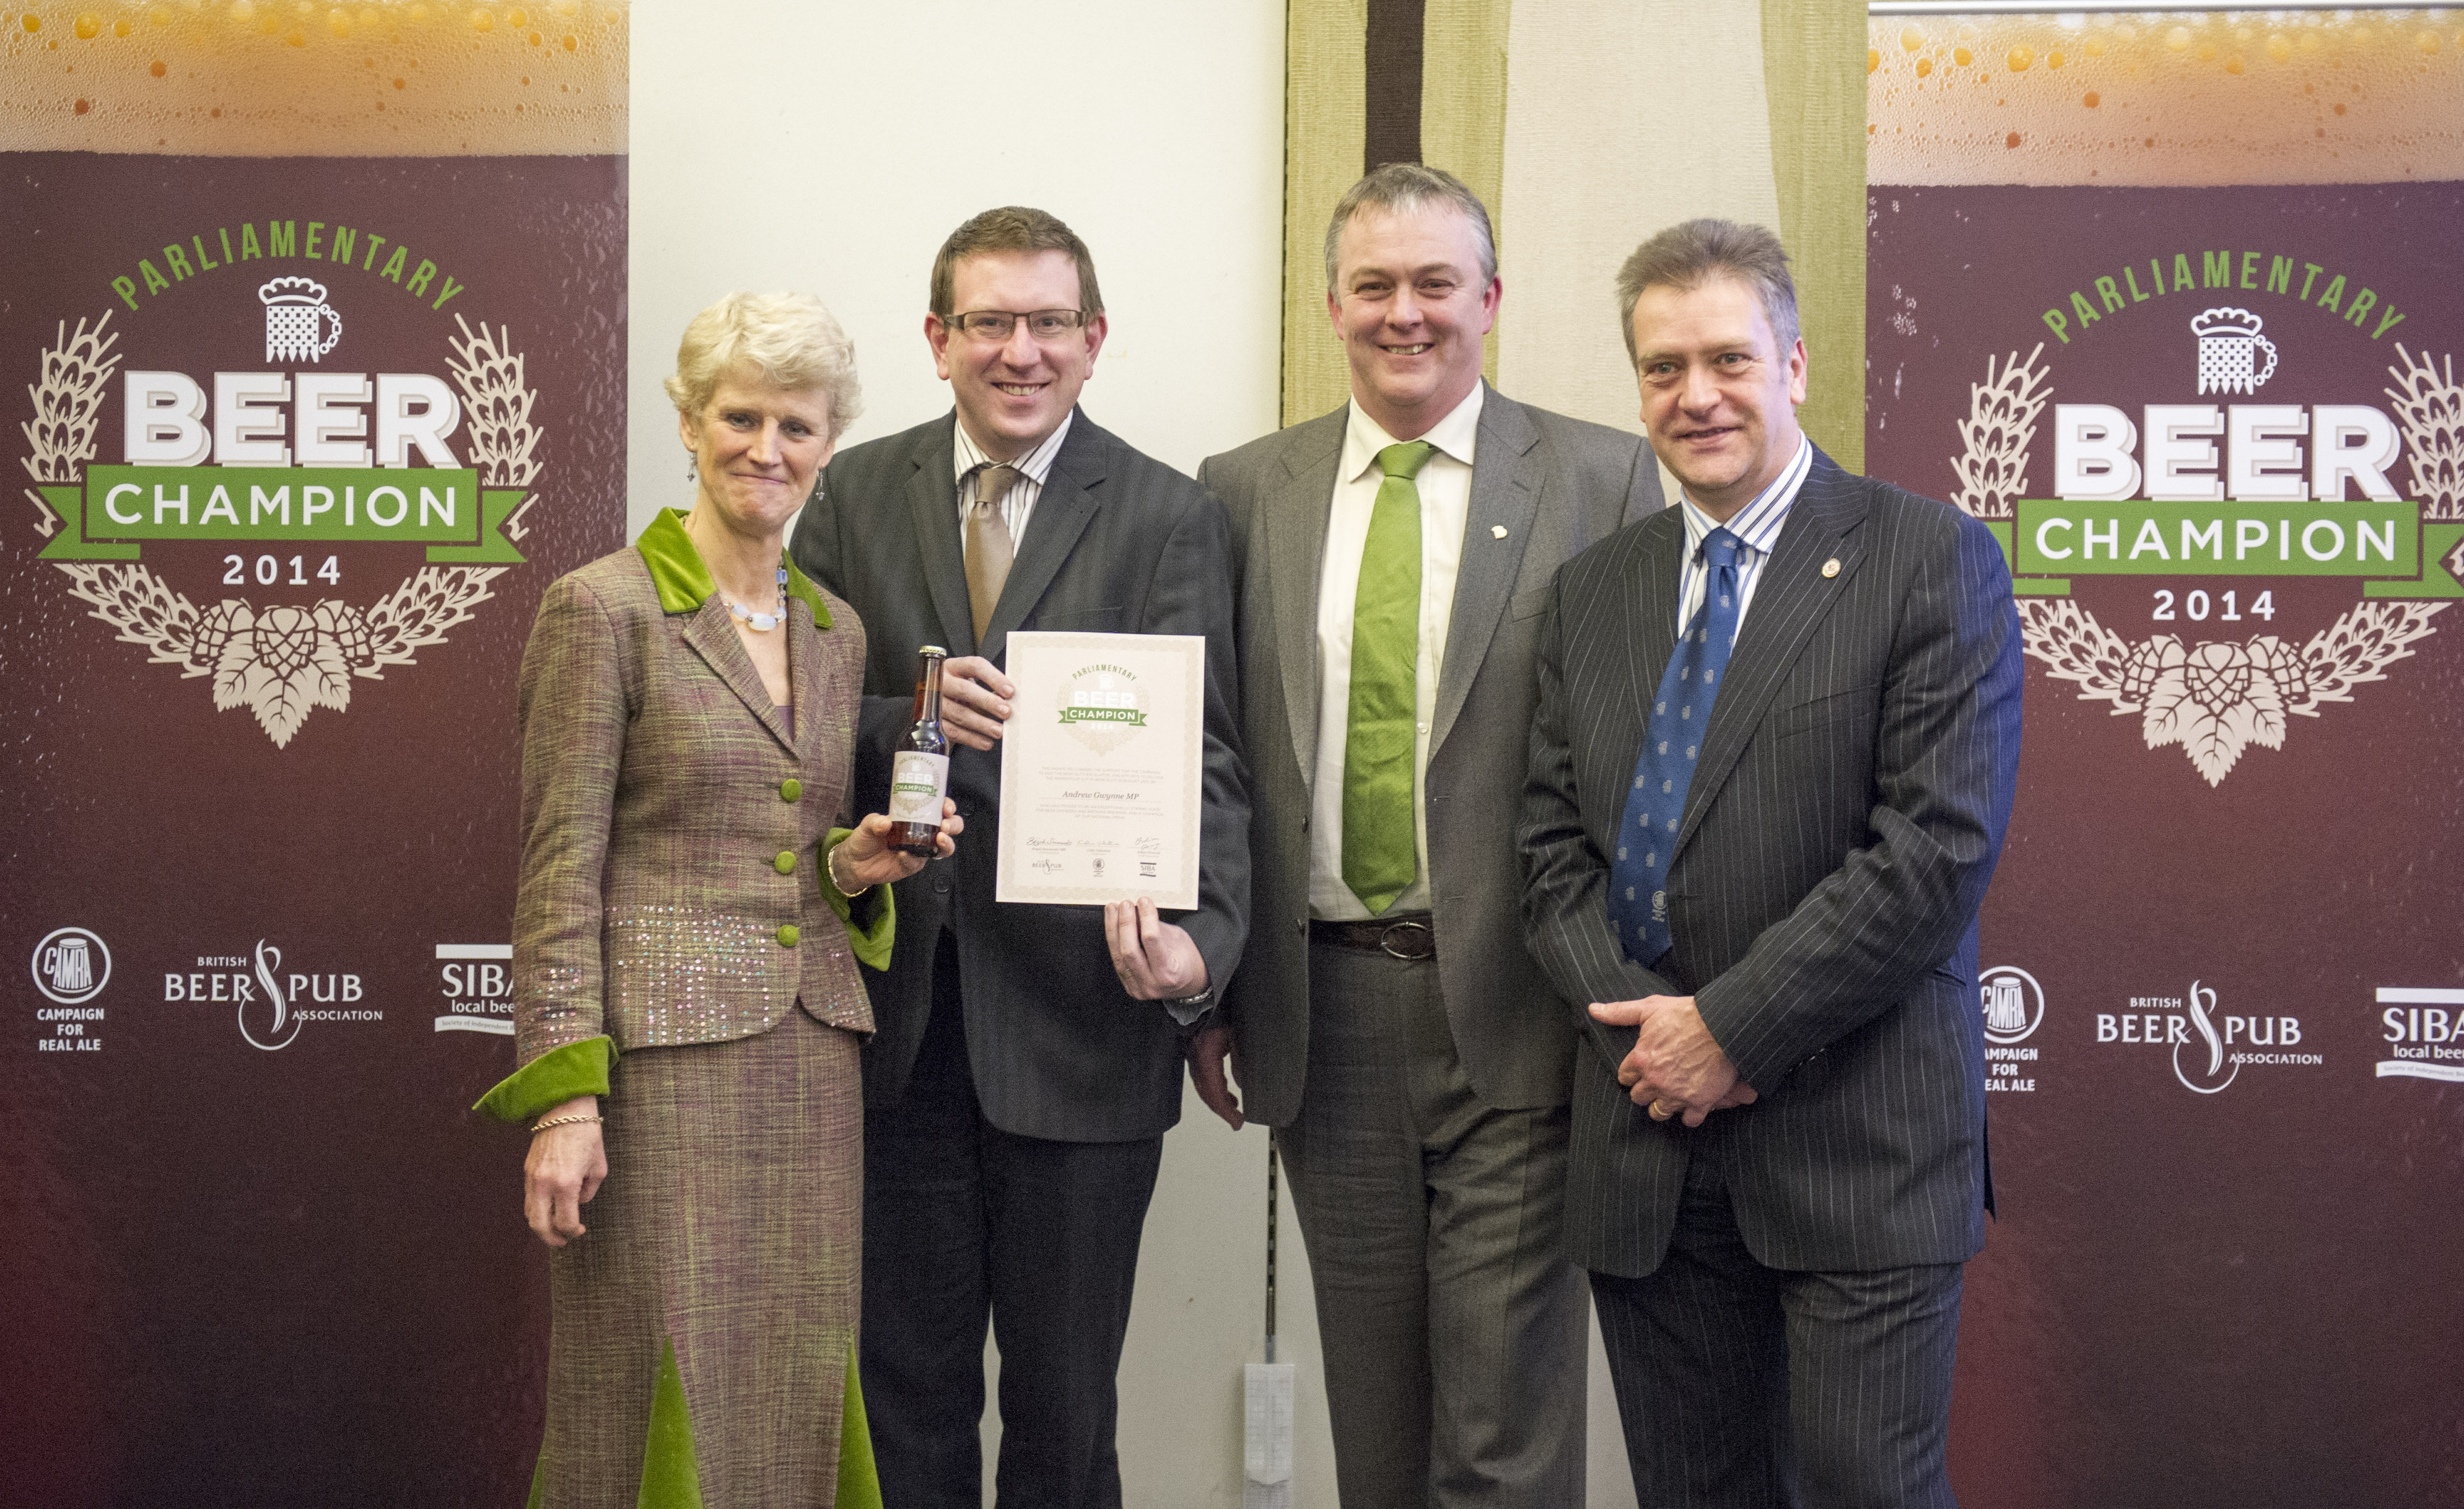 Andrew Gwynne MP with Brigid Simmonds OBE, BBPA; Keith Bott, SIBA and Colin Valentine, CAMRA